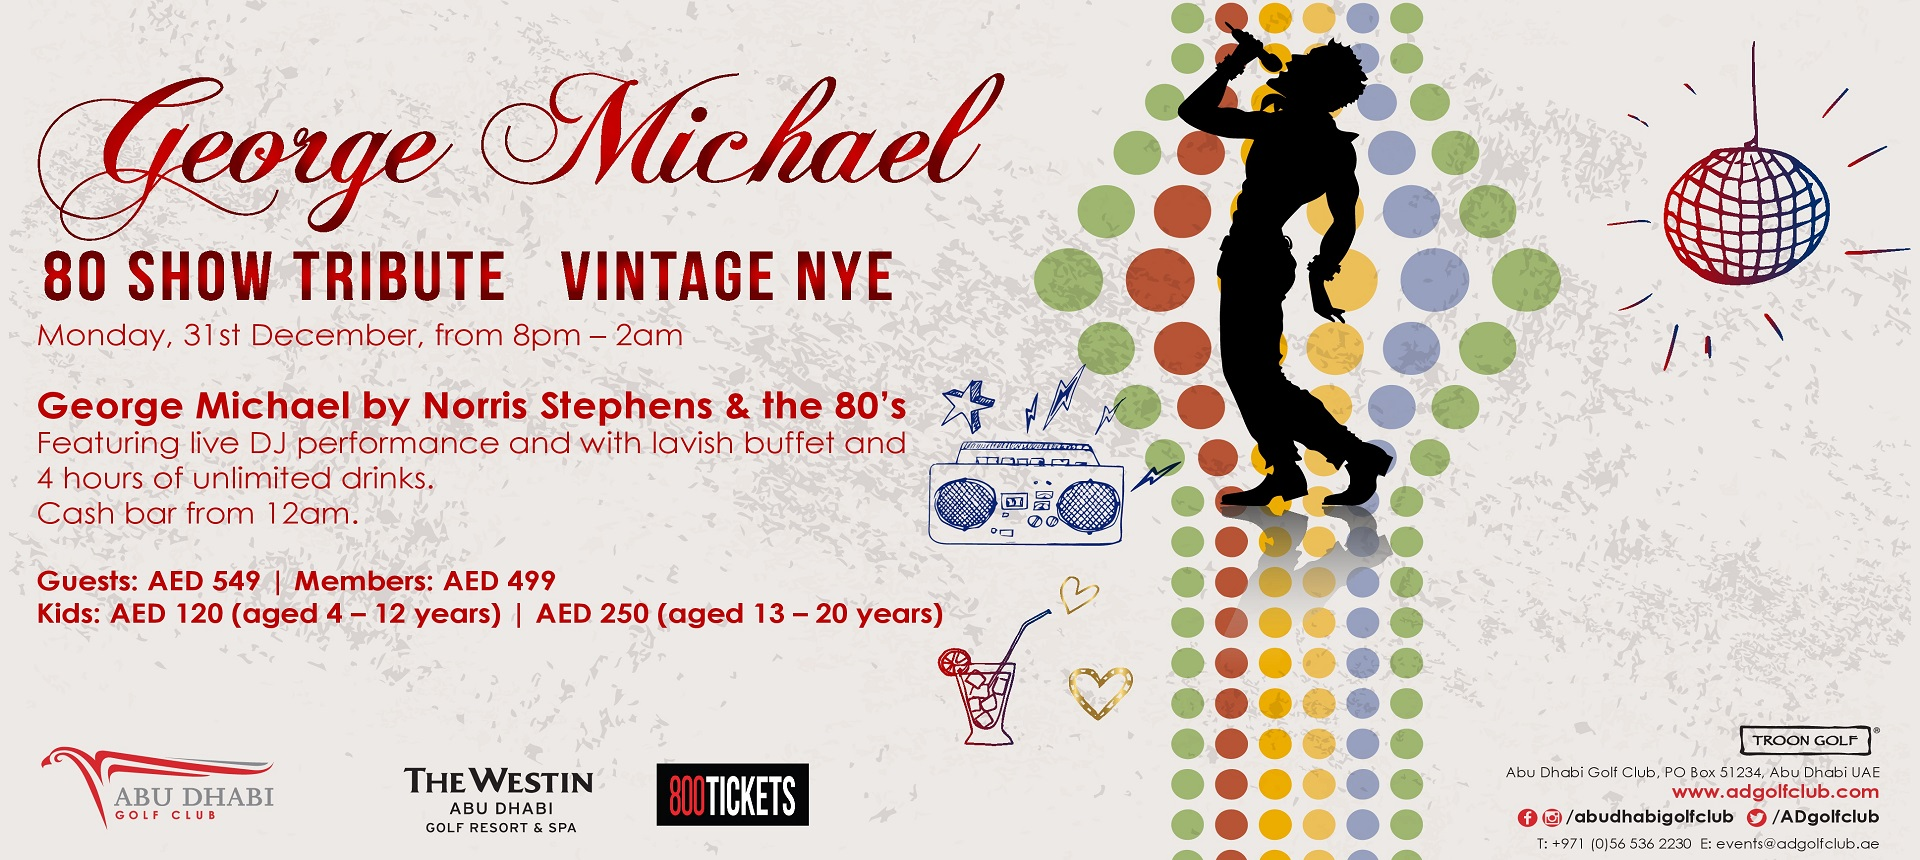 GEORGE MICHEAL - 80 Show Tribute Vintage NYE